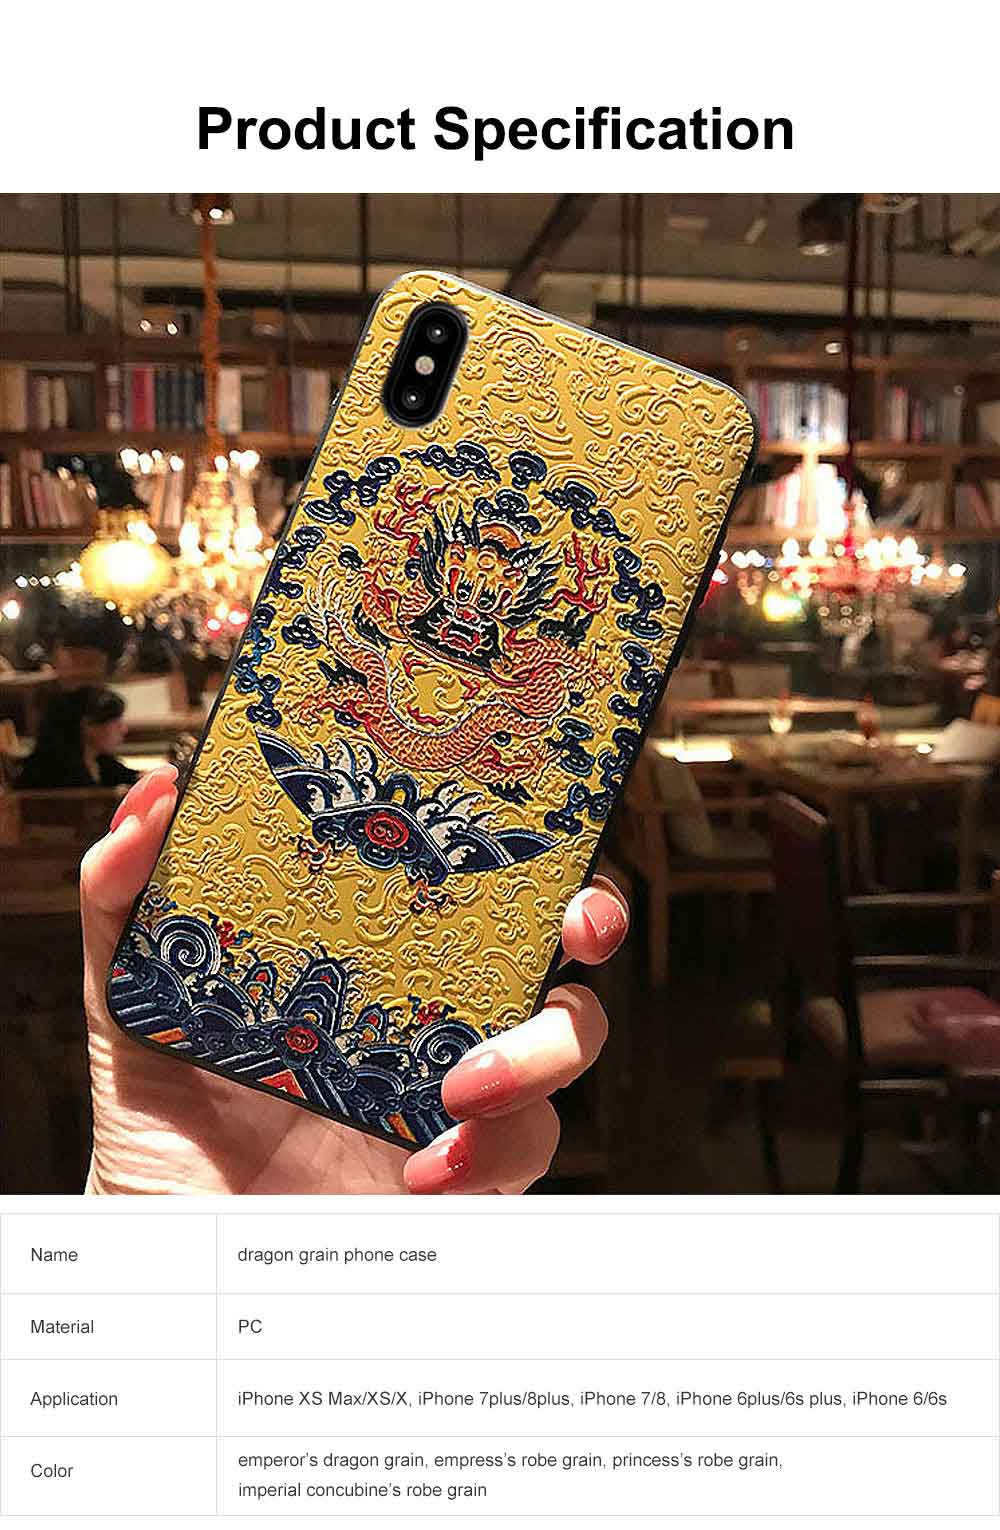 Dragon Grain Phone Case, Place Style Case Cover, Black Frosted Mobile Phone Case, Story of Yanxi Place, Emboss iPhone Case Cover 5